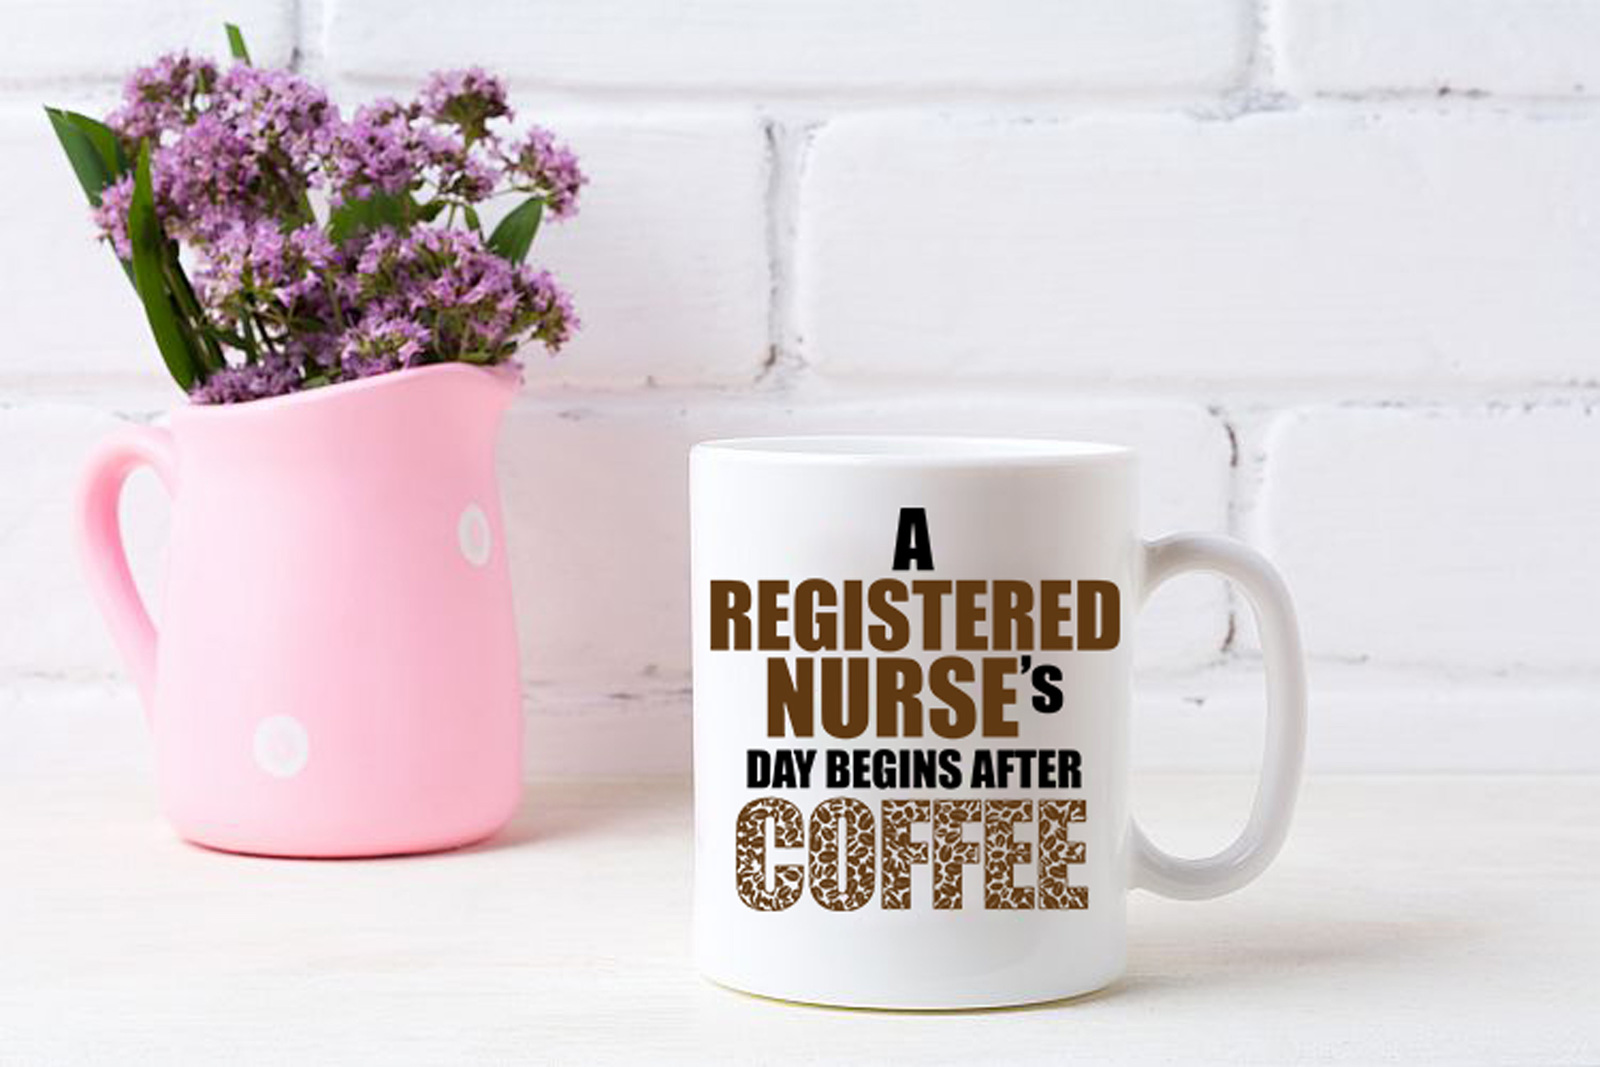 Nurse Coffee Mug - Registered Nurses Day Begins After Coffee Ceramic Travel Cup